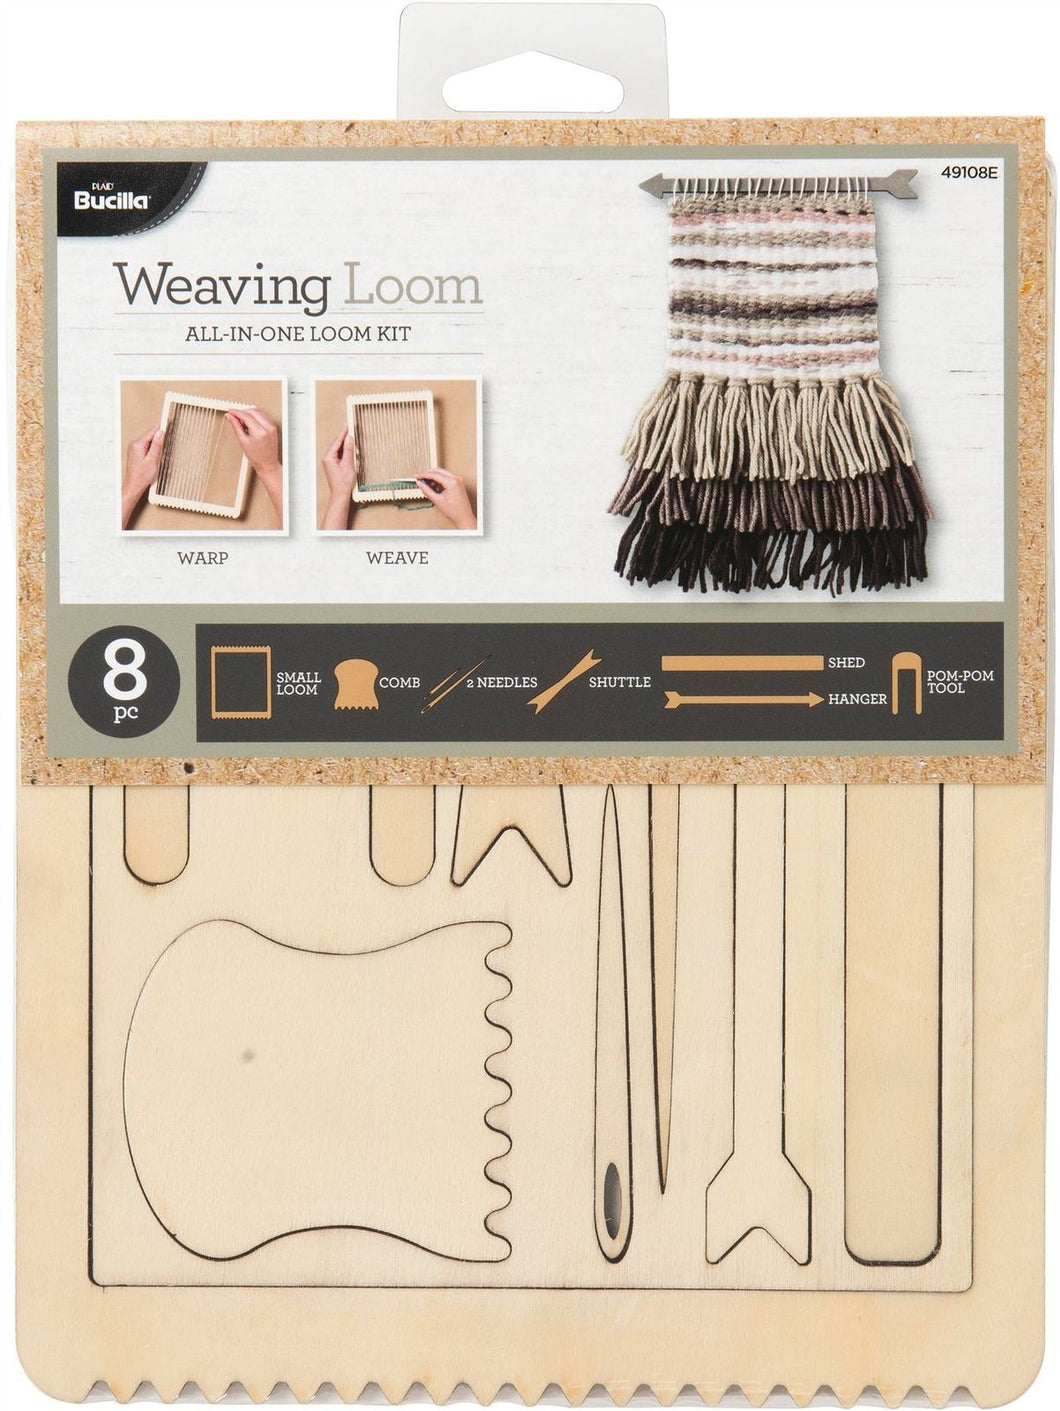 Bucilla All in one Loom kit